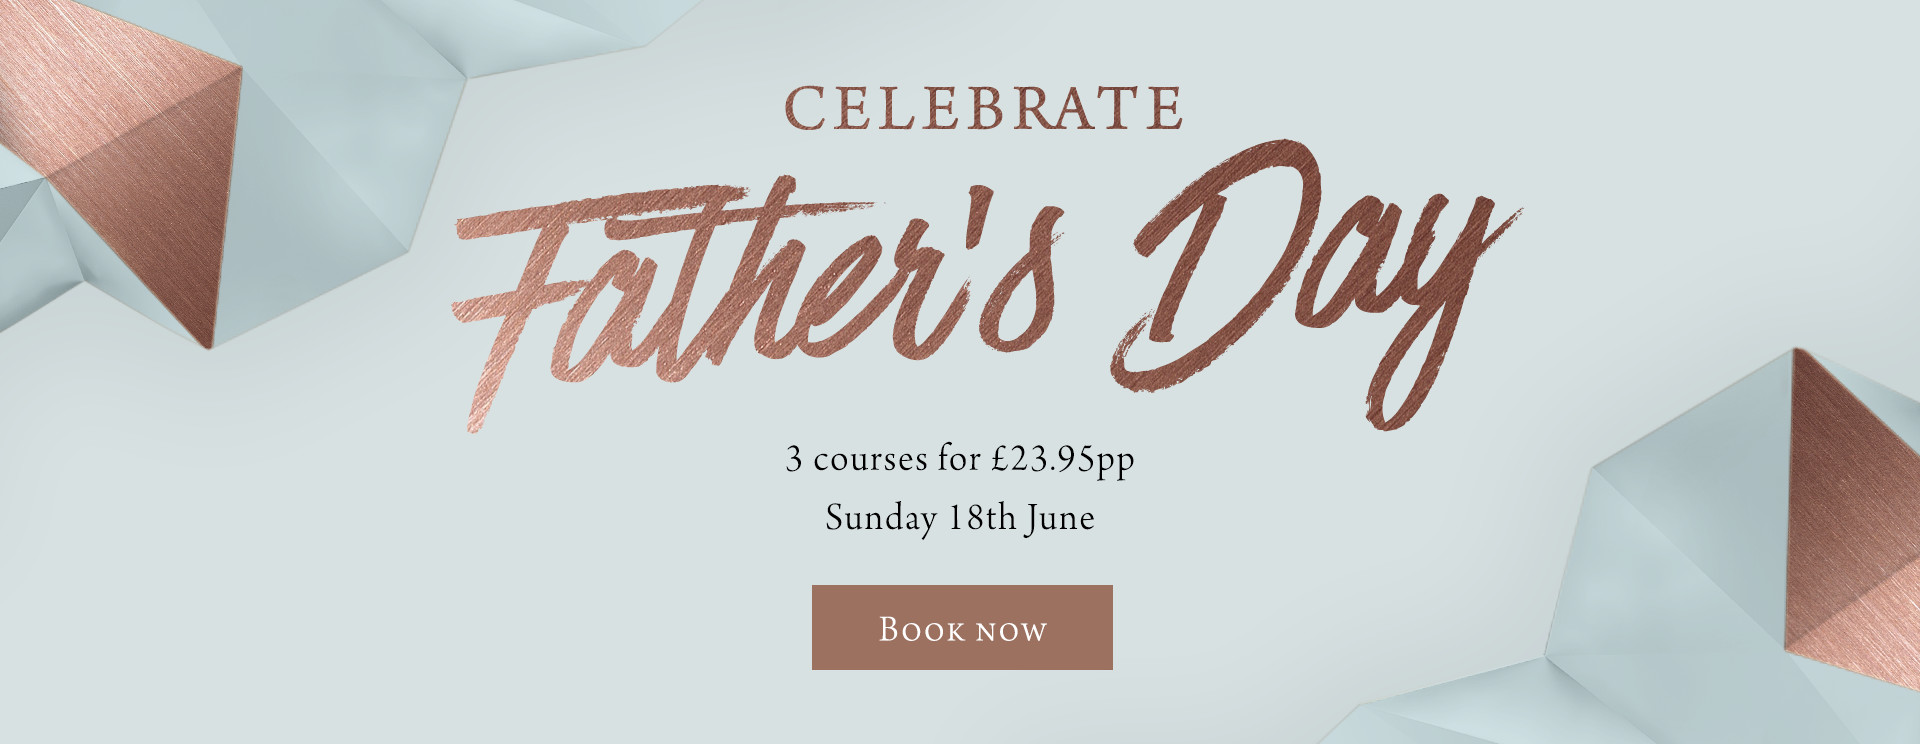 Father's Day at The Oatlands Chaser - Book now